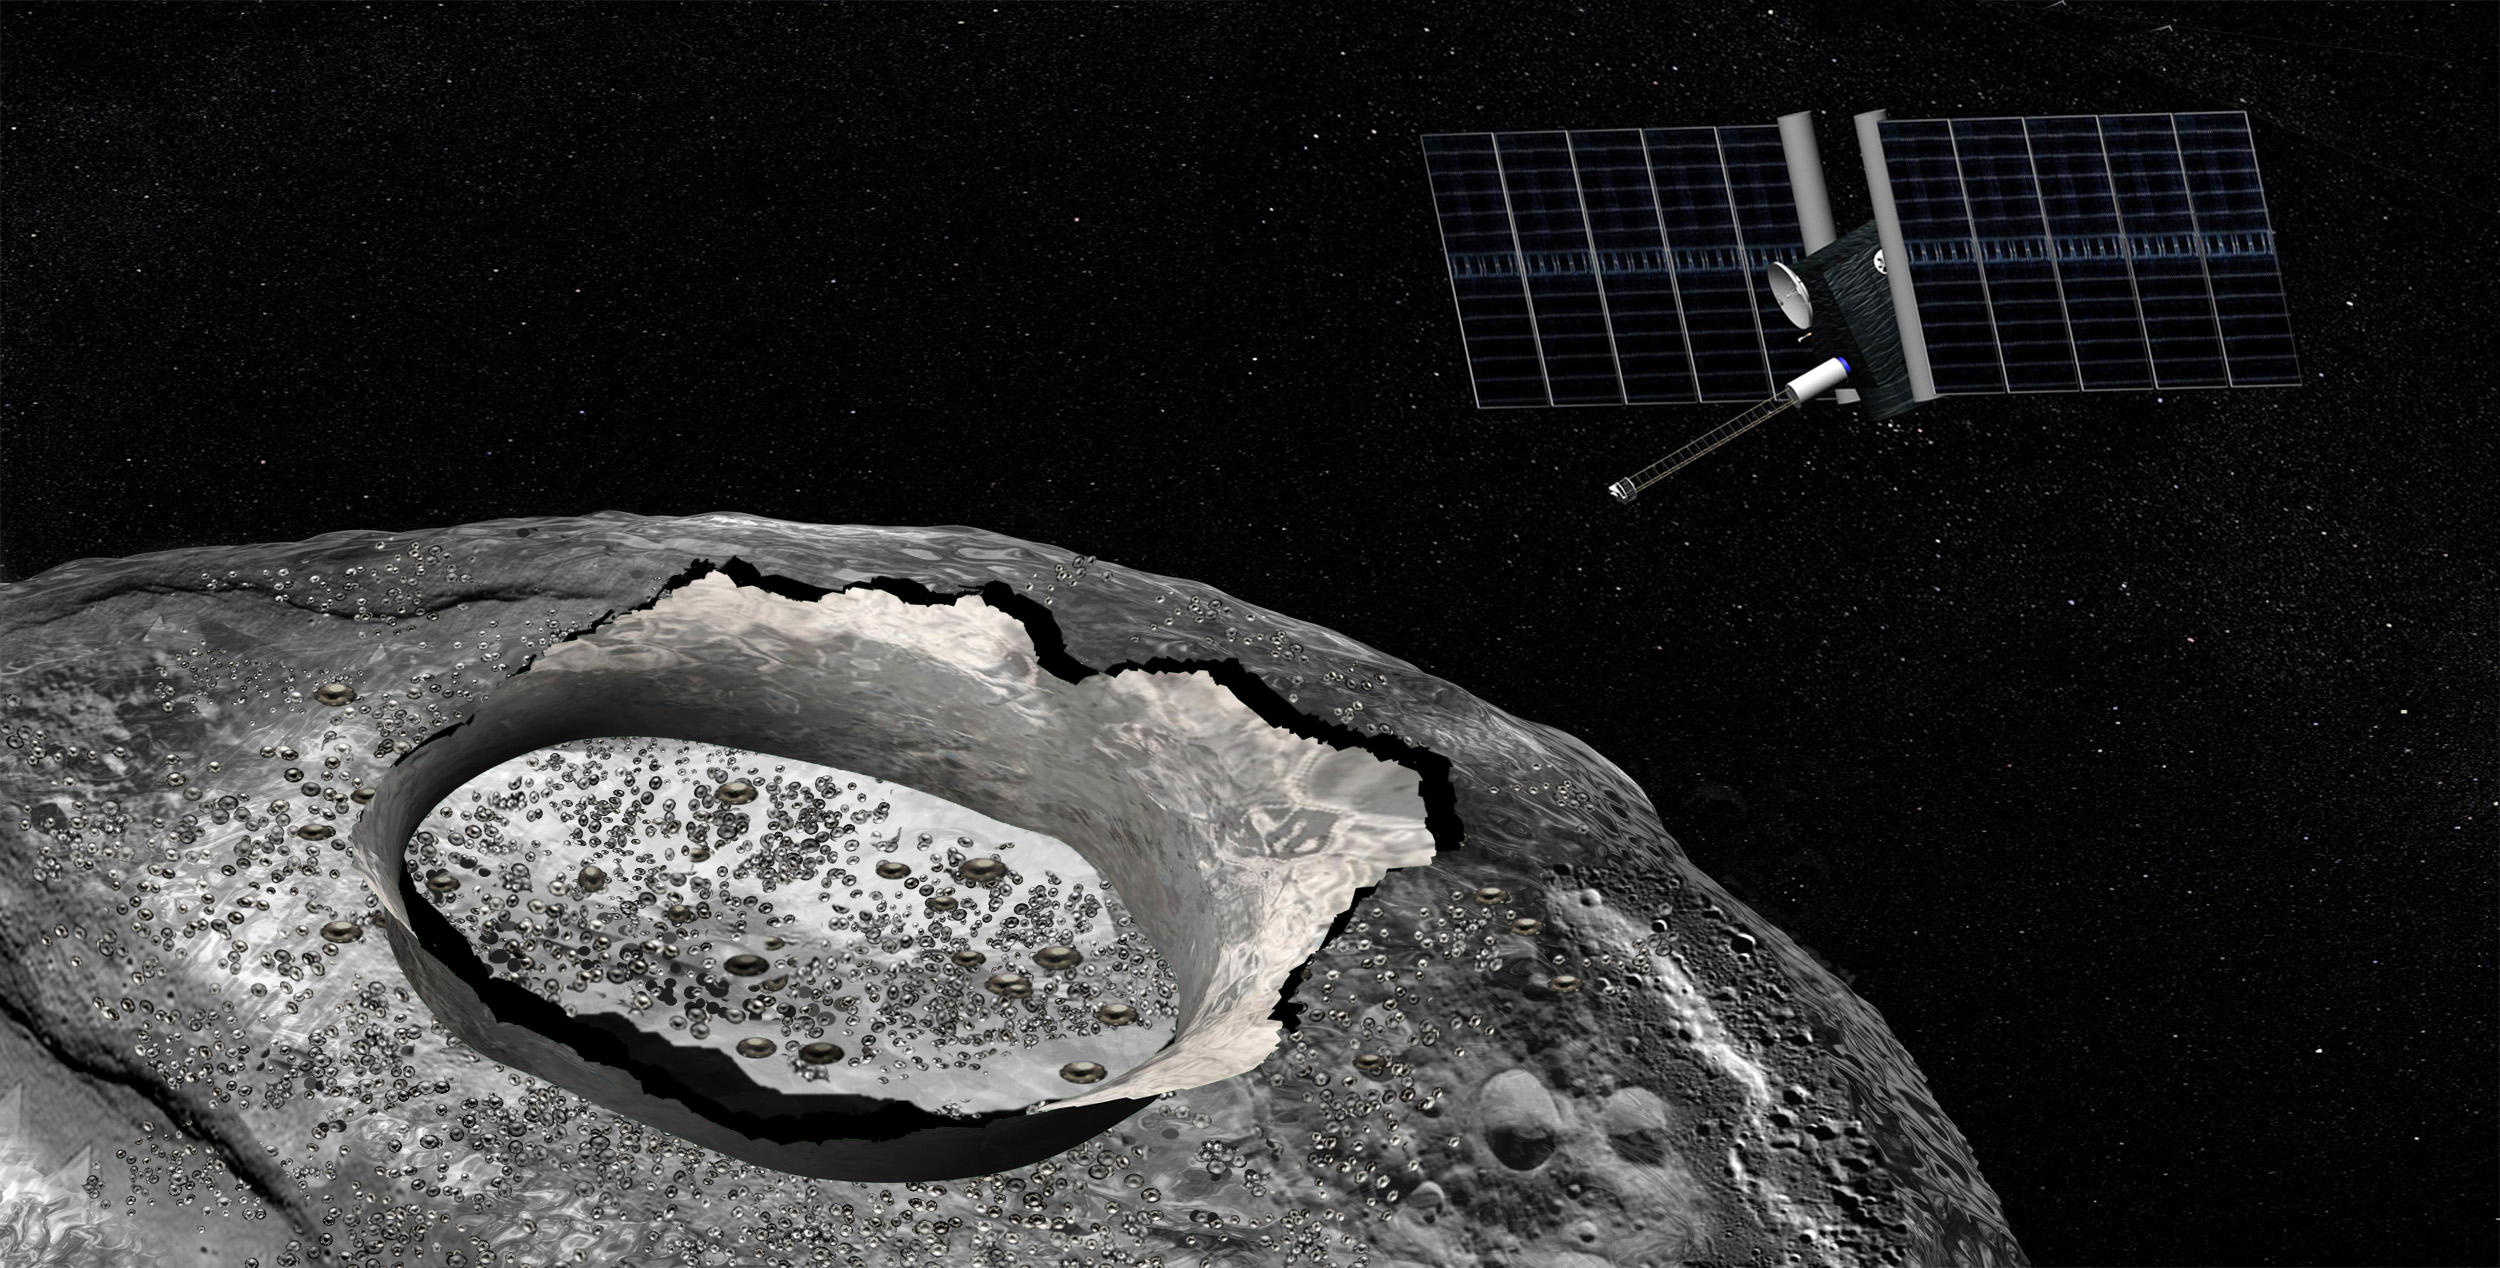 NASA's Mission to Metal Asteroid Psyche (Images)